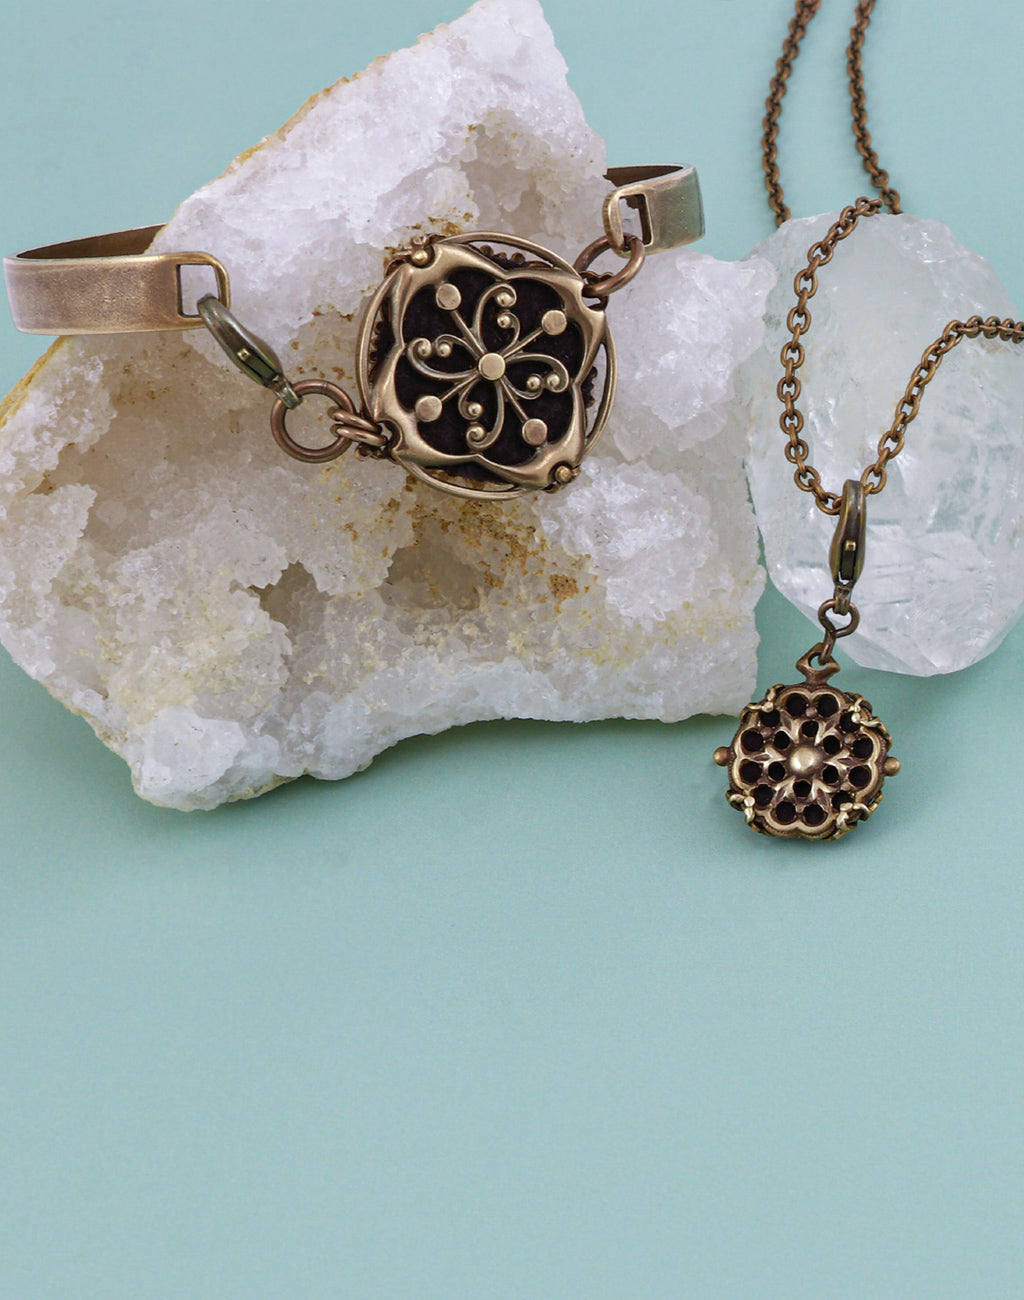 Mixed Diffuser Bracelet & Necklace Interchangeable Set